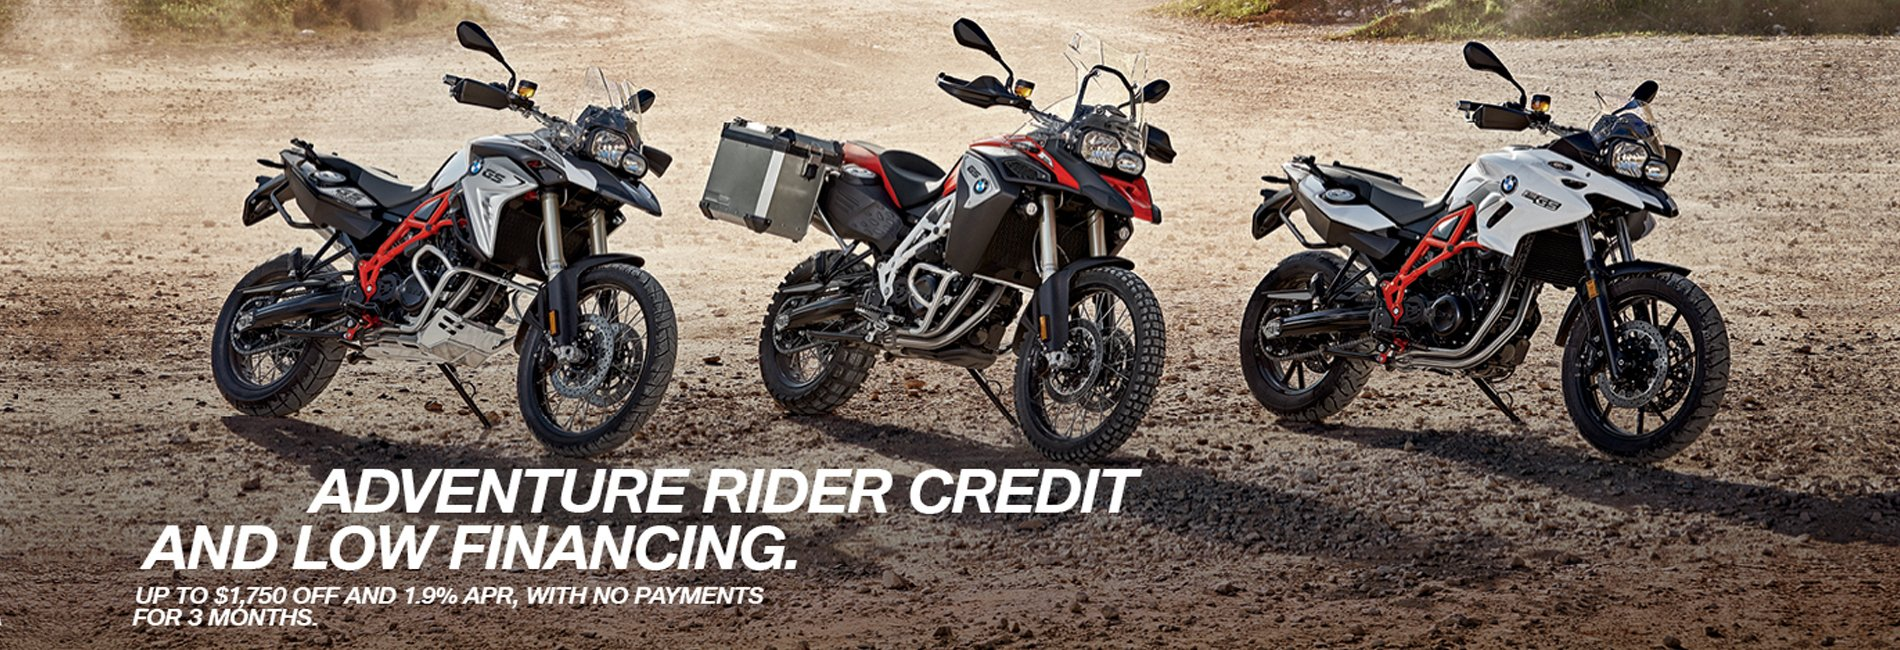 AdventureRiderCreditandAPR-DealerWebAsset1900x650